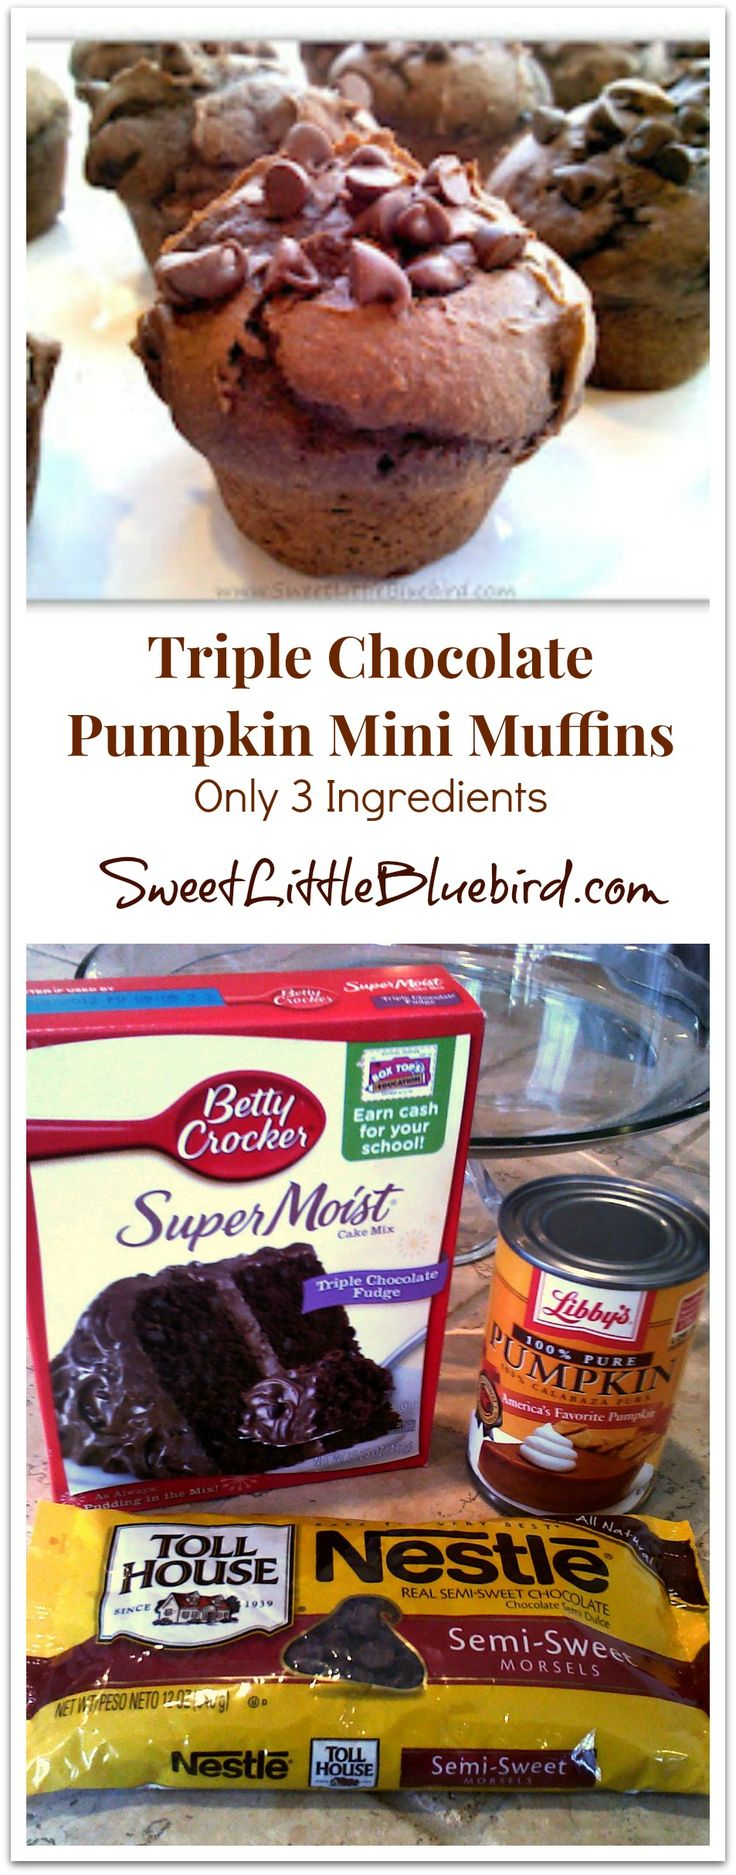 Triple Chocolate Pumpkin Mini Muffins - Only 3 ingredients! Super moist & delicious!  | SweetLittleBluebird.com